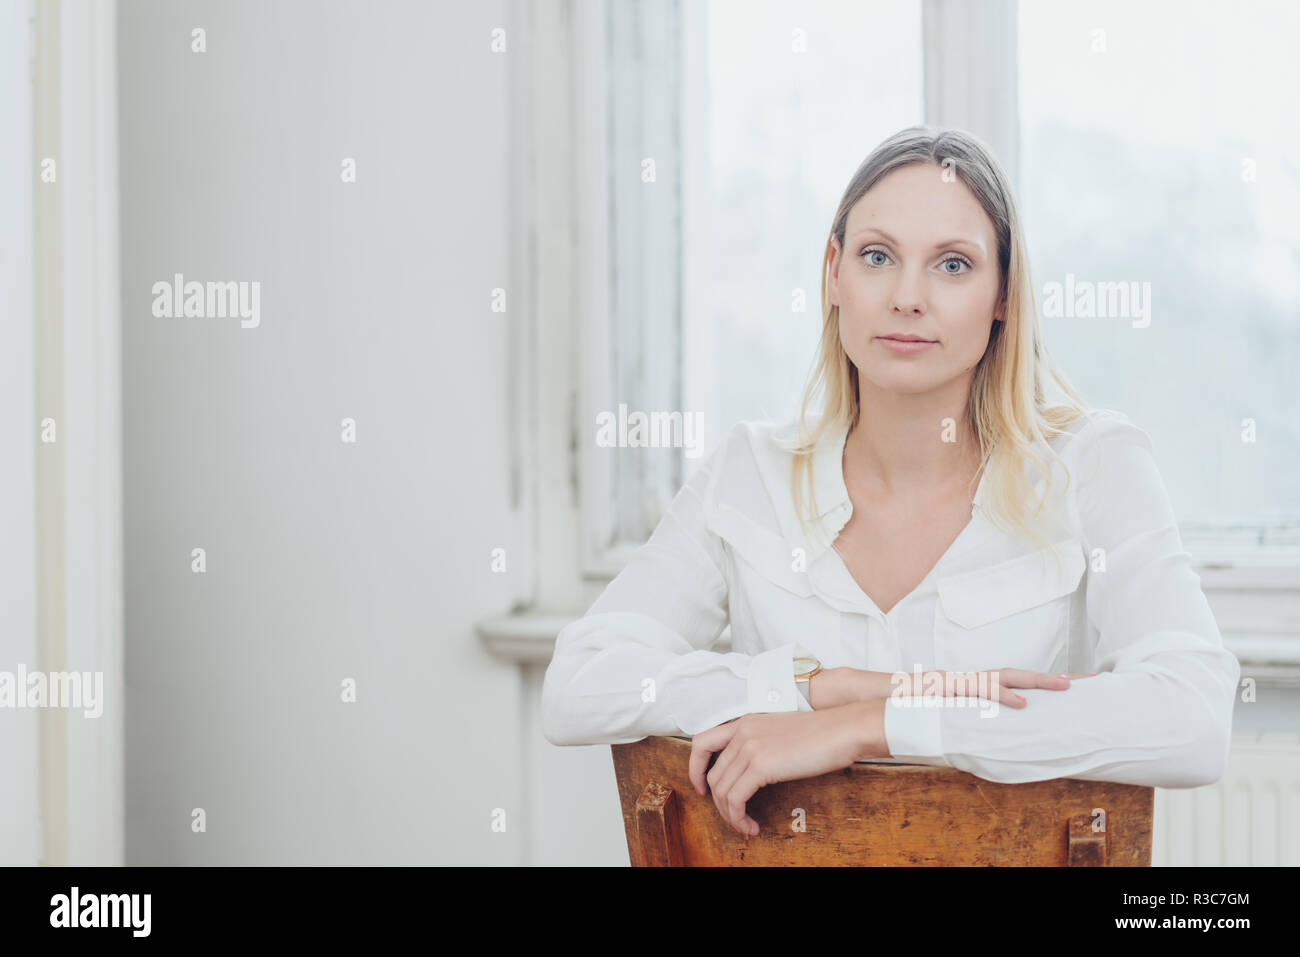 Young woman sitting on a reversed chair staring at the camera with a deadpan intense expression indoors at home with copy space - Stock Image